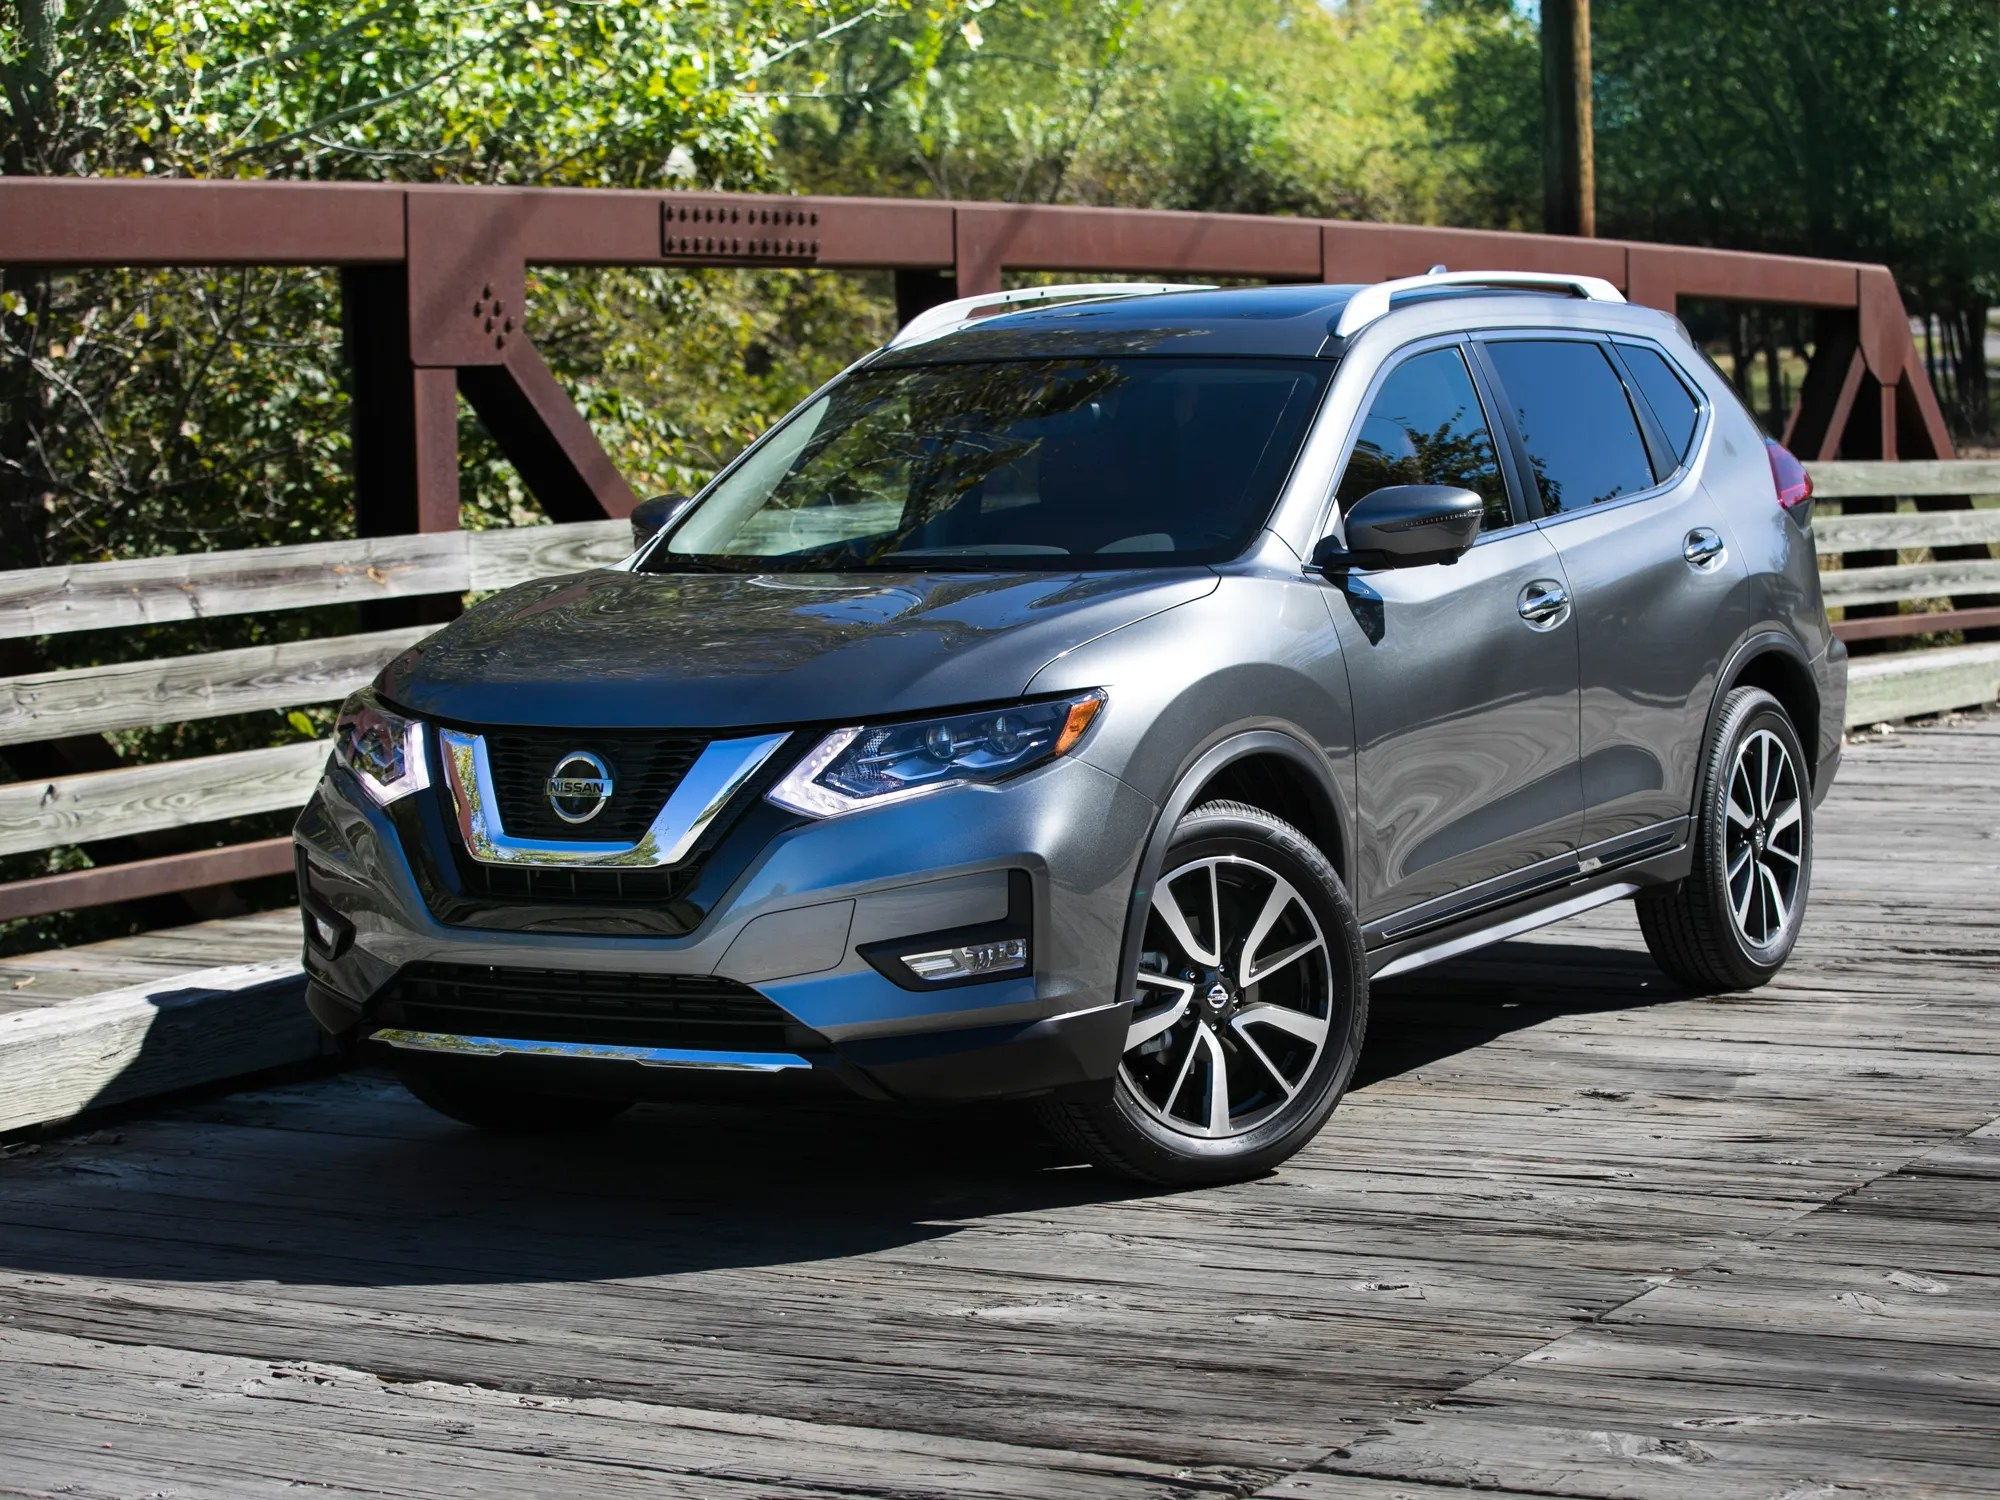 hight resolution of nissan offers its propilot assist system on popular models like the leaf rogue and altima